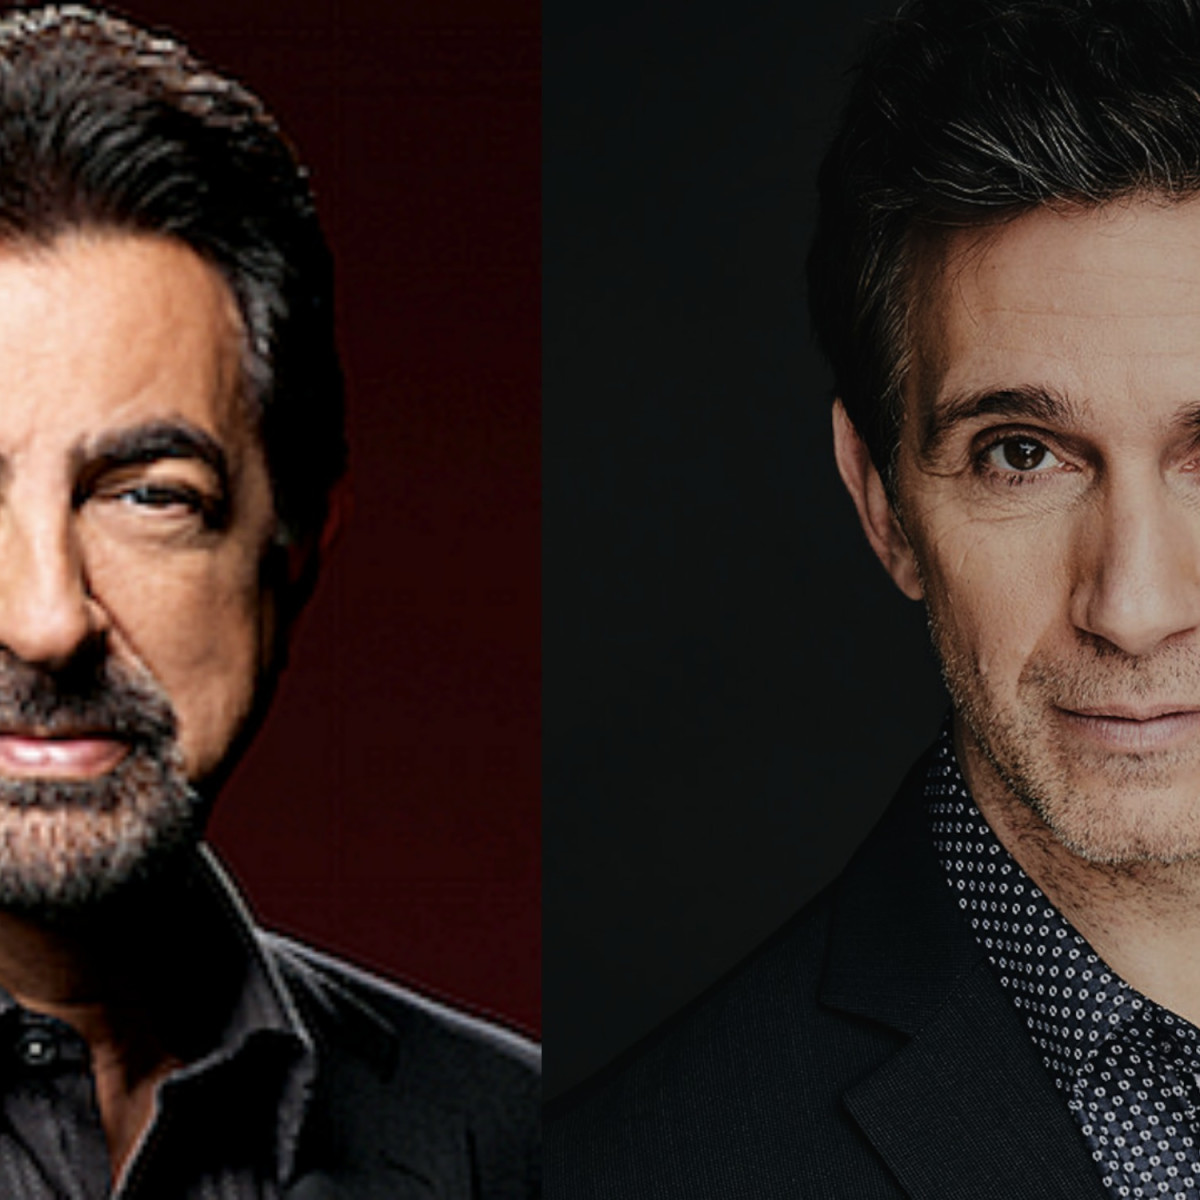 Joe Mantegna and Ronnie Marmo